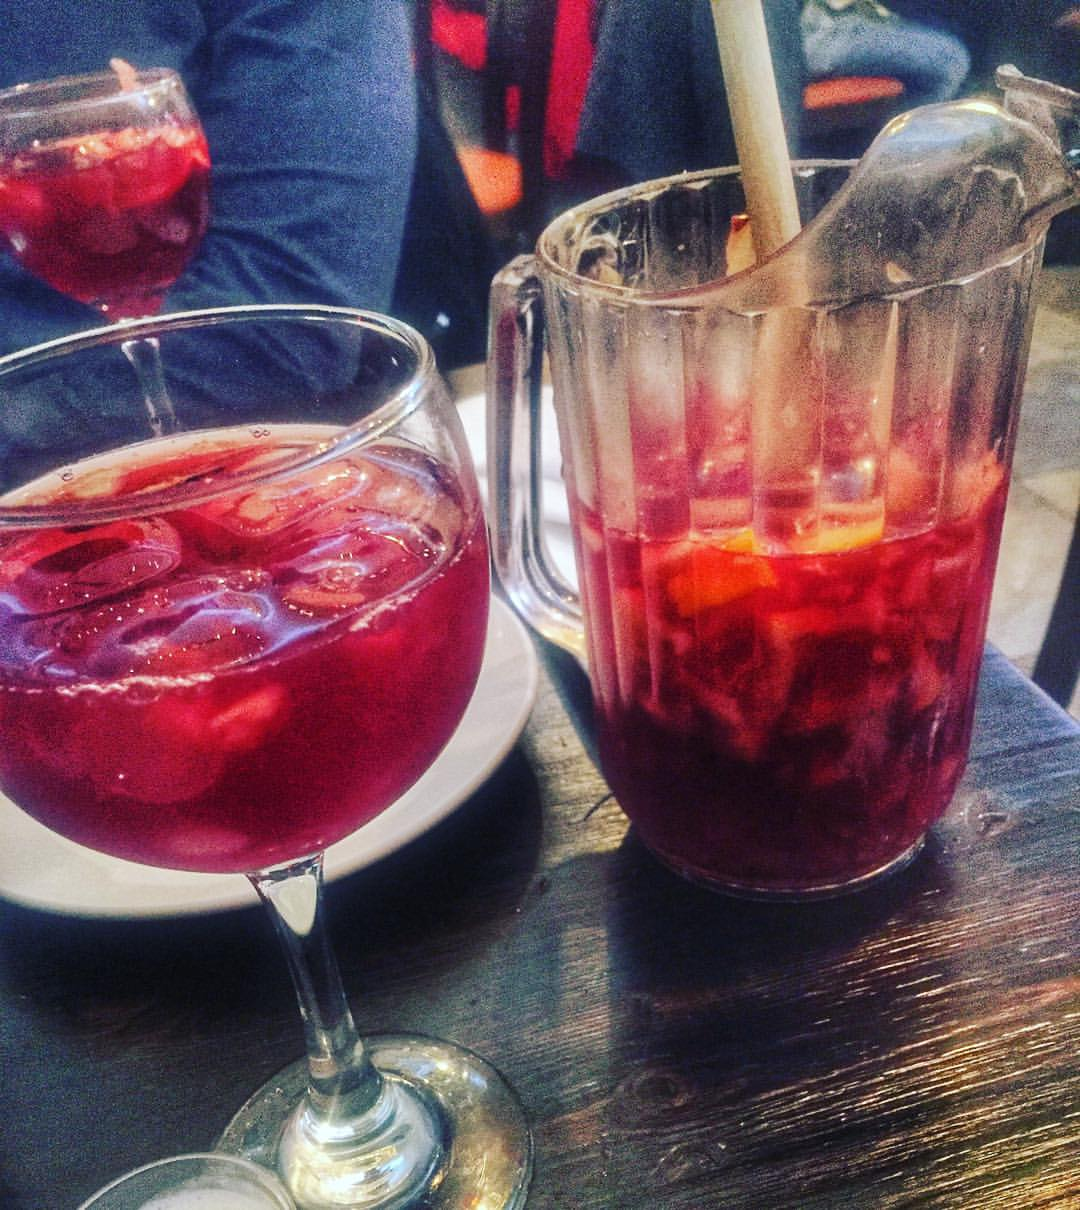 Yesterday's New Year's Day sangria from El Olivo in Astoria.            #Astoria #astoriany #queensnyc #queens #sangria #heartofqueens  (at El Olivo Restaurant)